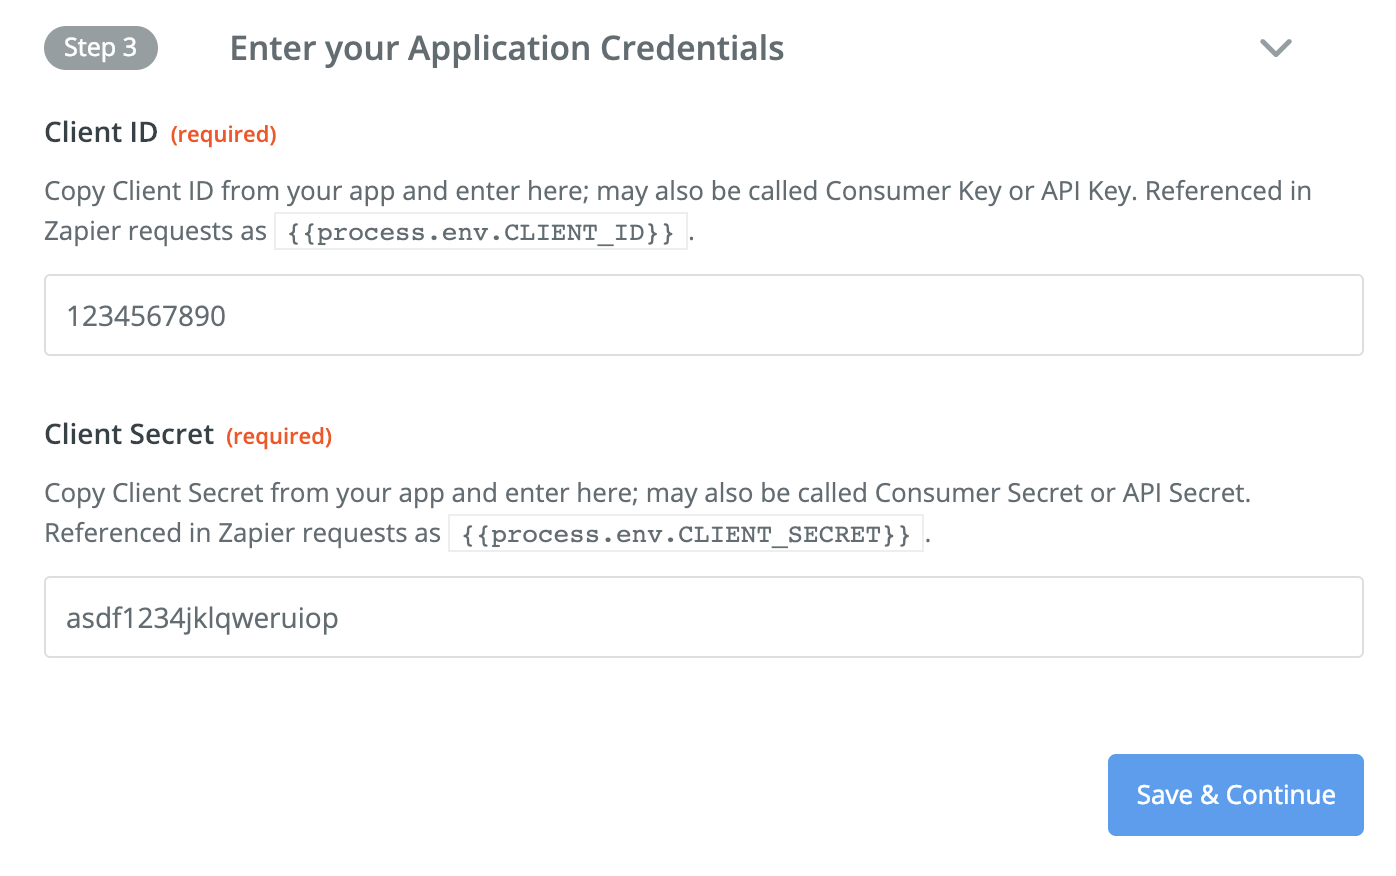 Add application credentials to Zapier